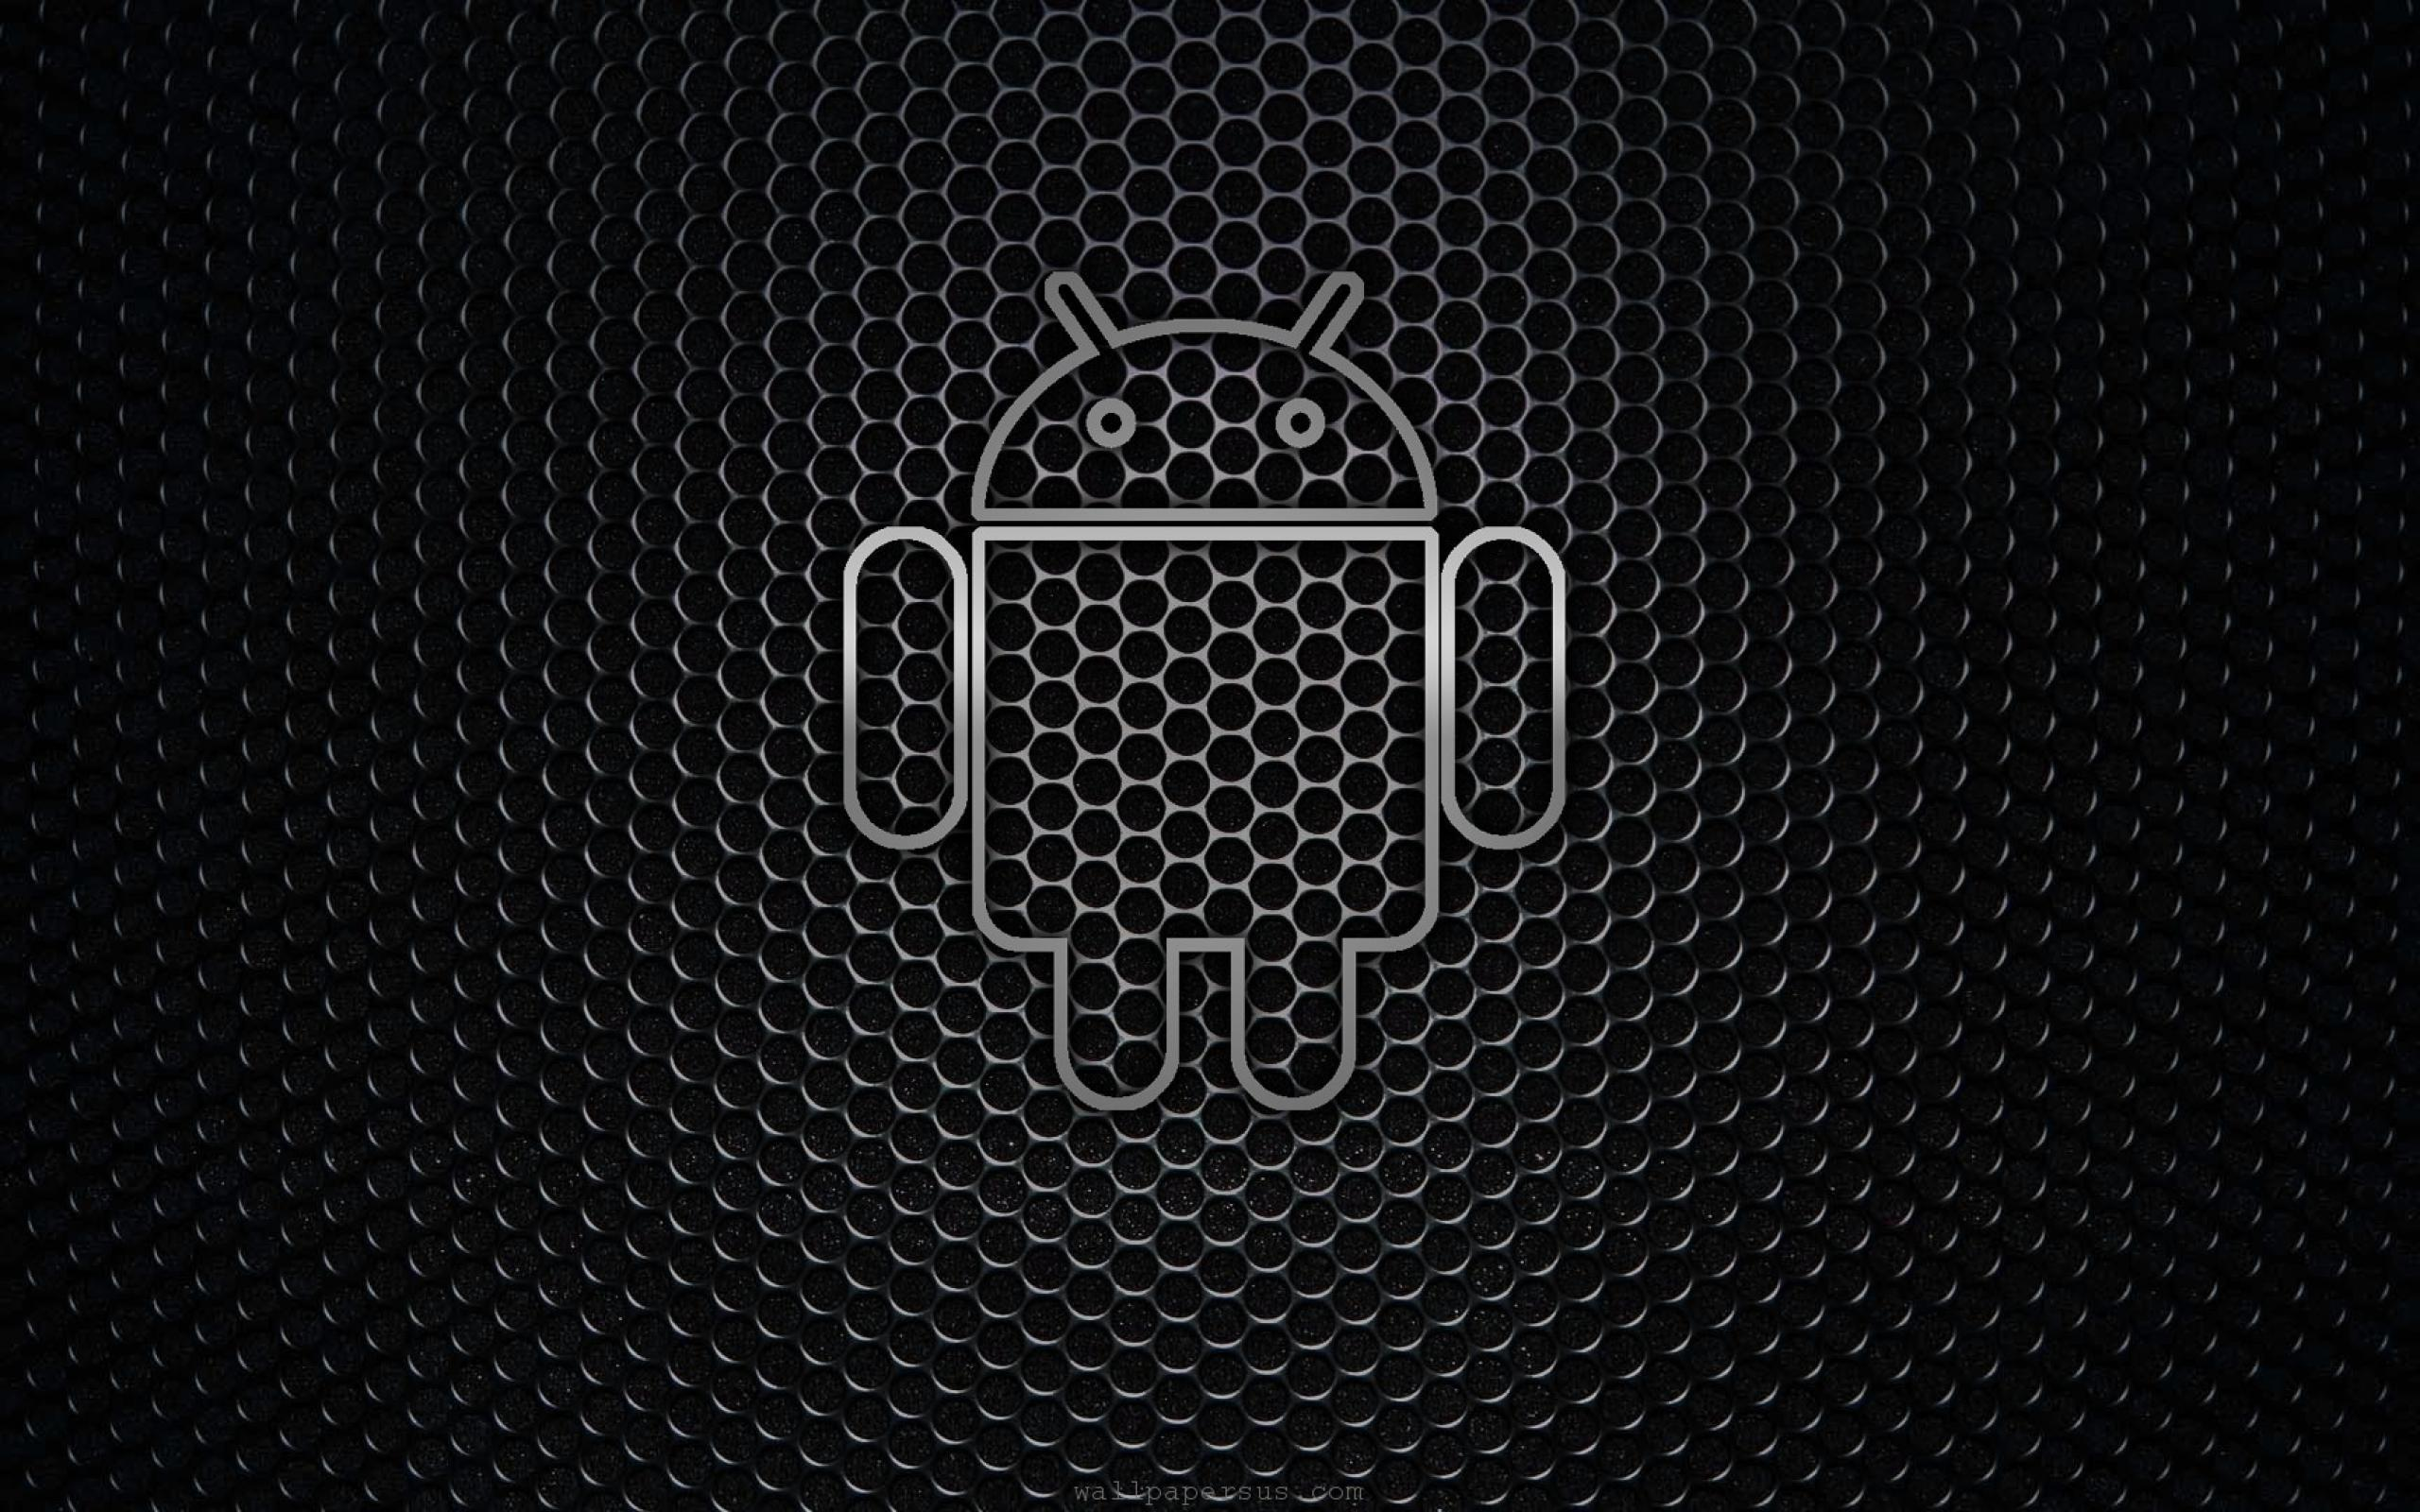 Android logo wallpapers wallpaper cave most downloaded android logo wallpapers full hd wallpaper search voltagebd Gallery